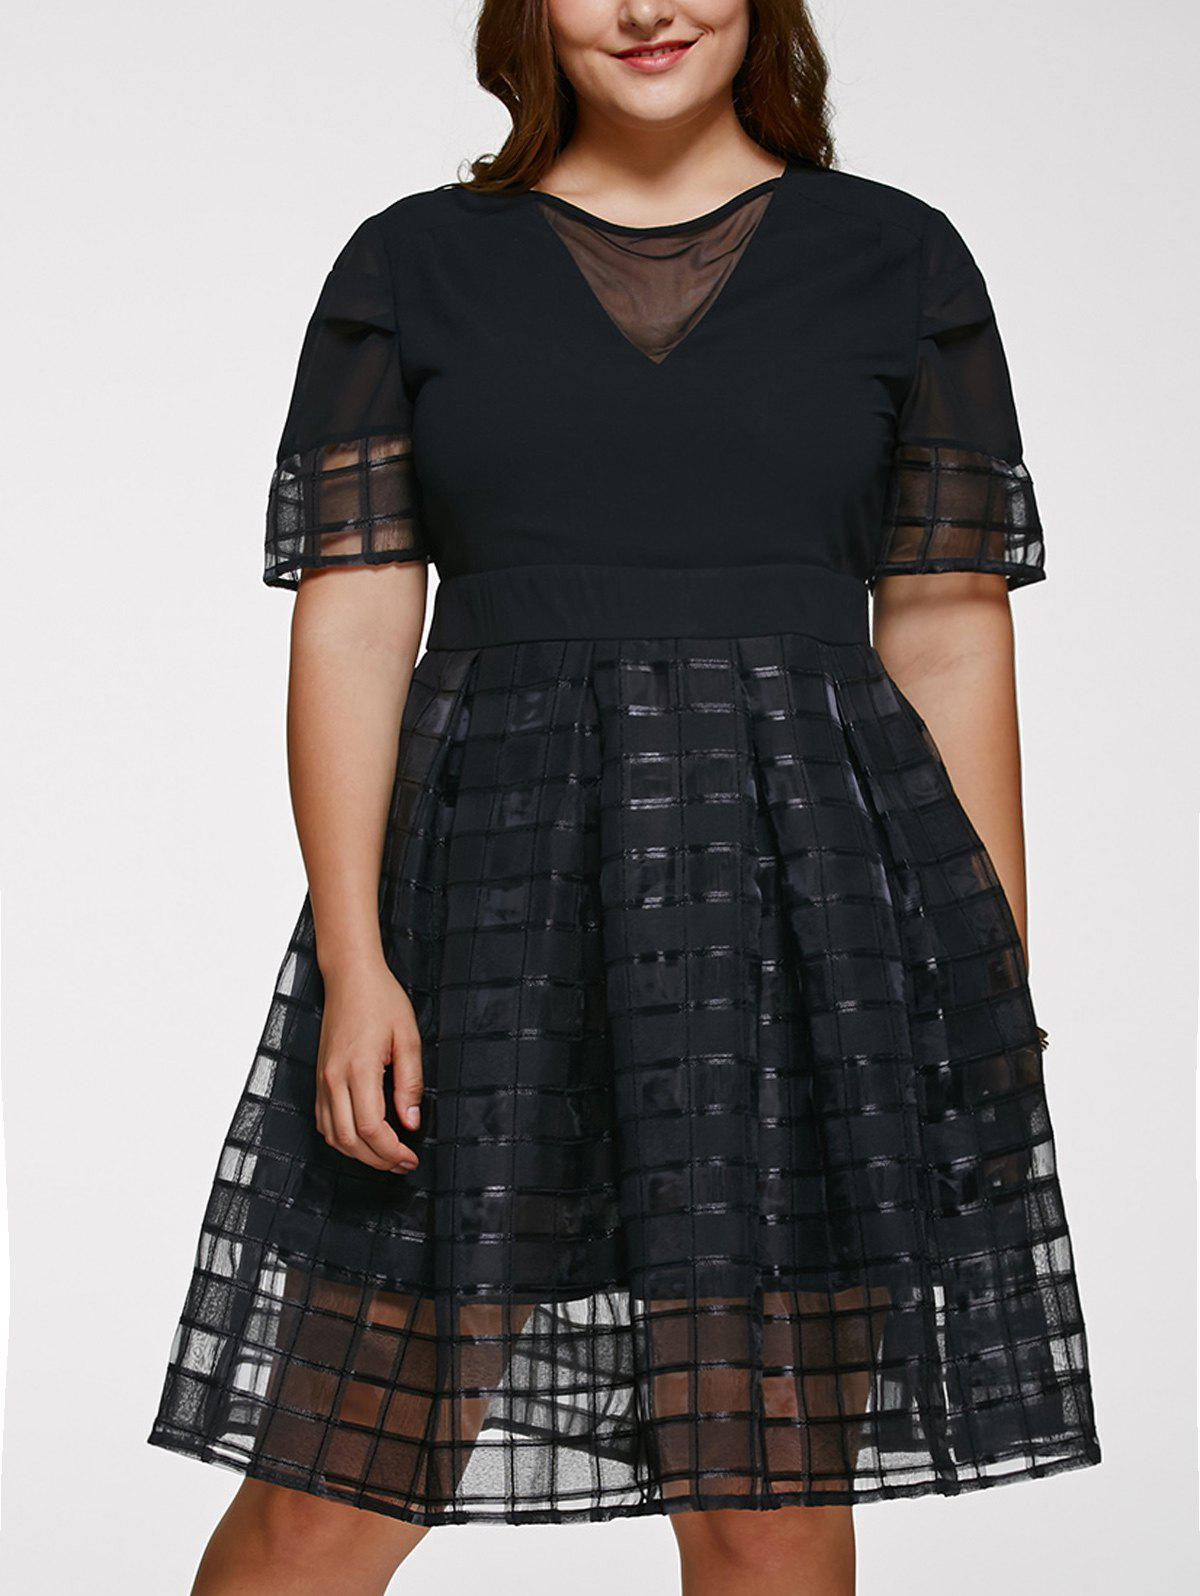 Chic Short Sleeve Plus Size See-Through Dress - BLACK 5XL